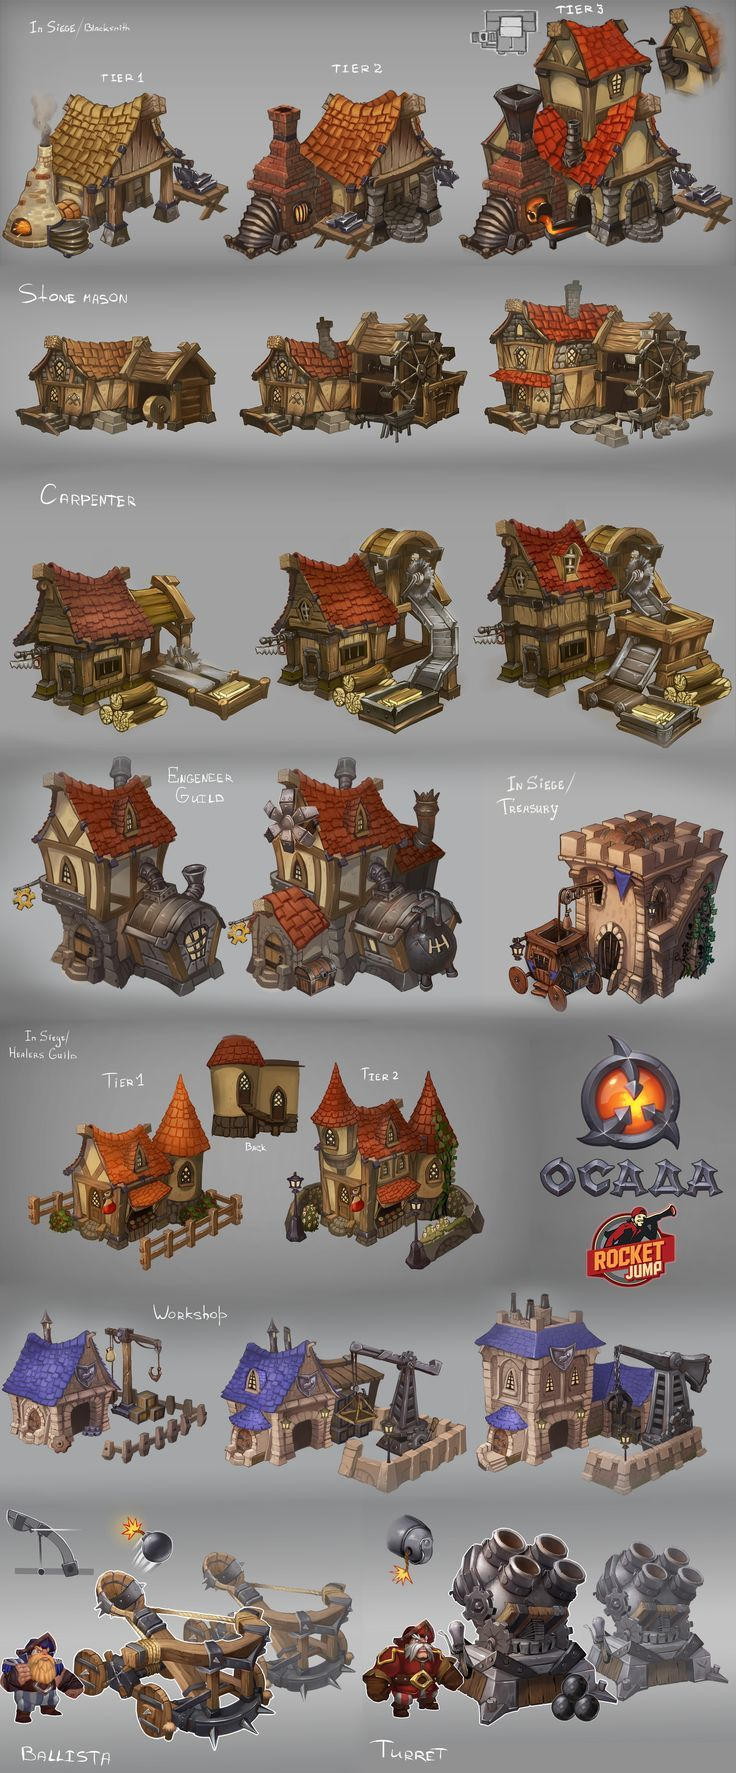 Siege - buildings by Larbesta game user interface gui ui | NOT OUR ART - Please click artwork for source | WRITING INSPIRATION for Dungeons and Dragons DND Pathfinder PFRPG Warhammer 40k Star Wars Shadowrun Call of Cthulhu and other d20 roleplaying fantasy science fiction scifi horror location equipment monster character game design | Create your own RPG Books w/ www.rpgbard.com: